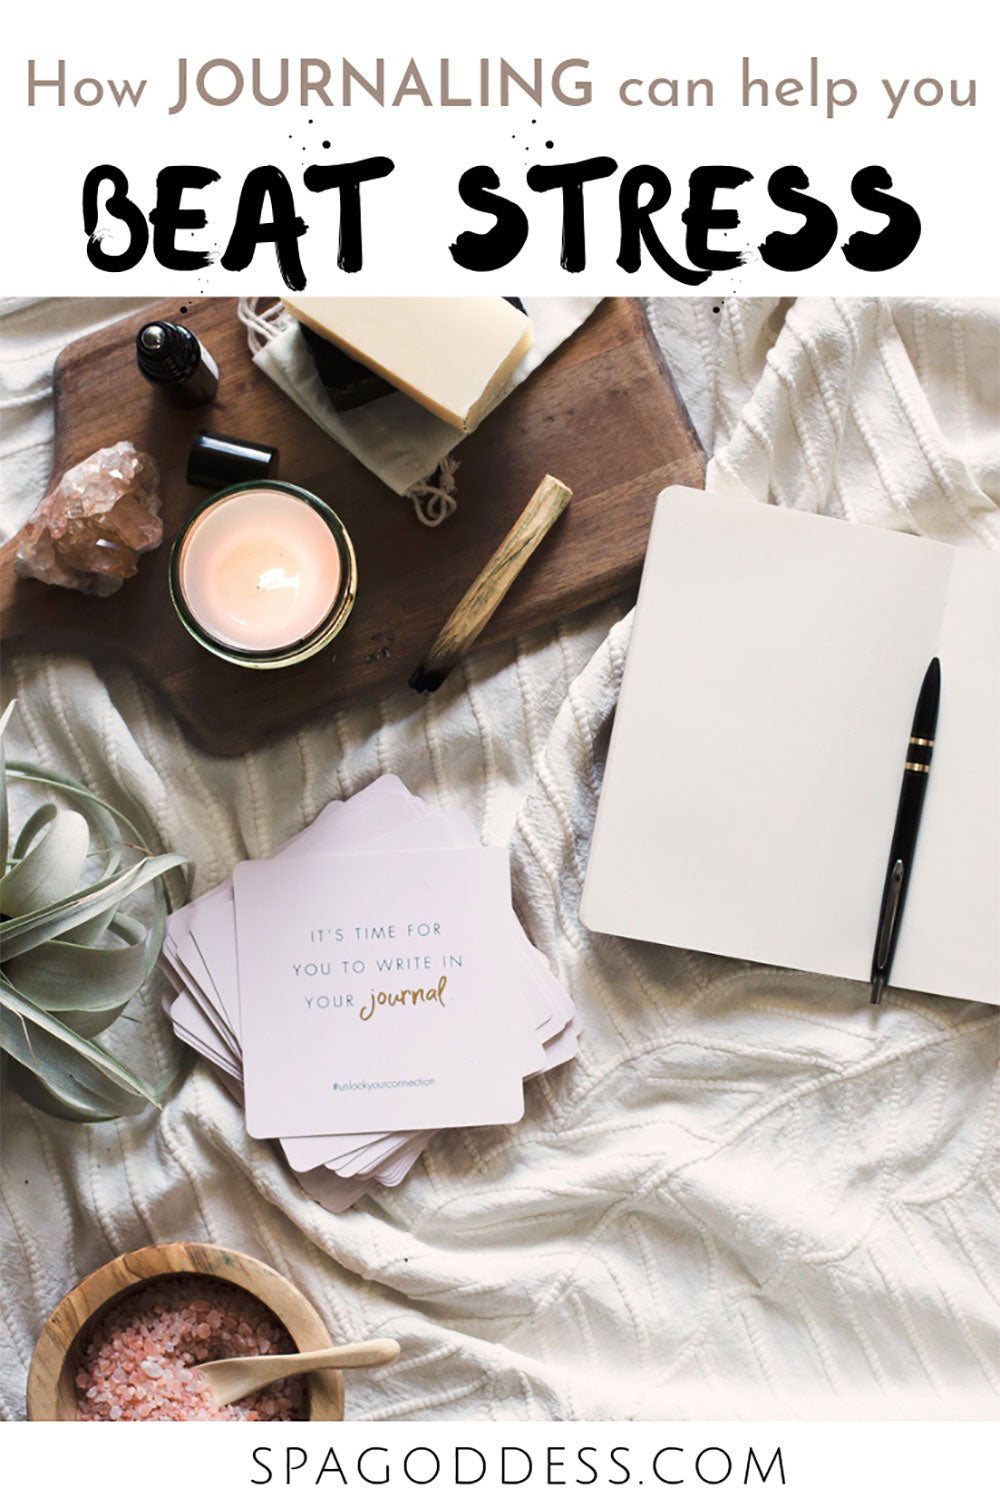 Learn how to use journaling to beat stress, a blog post by SpaGoddess Apothecary